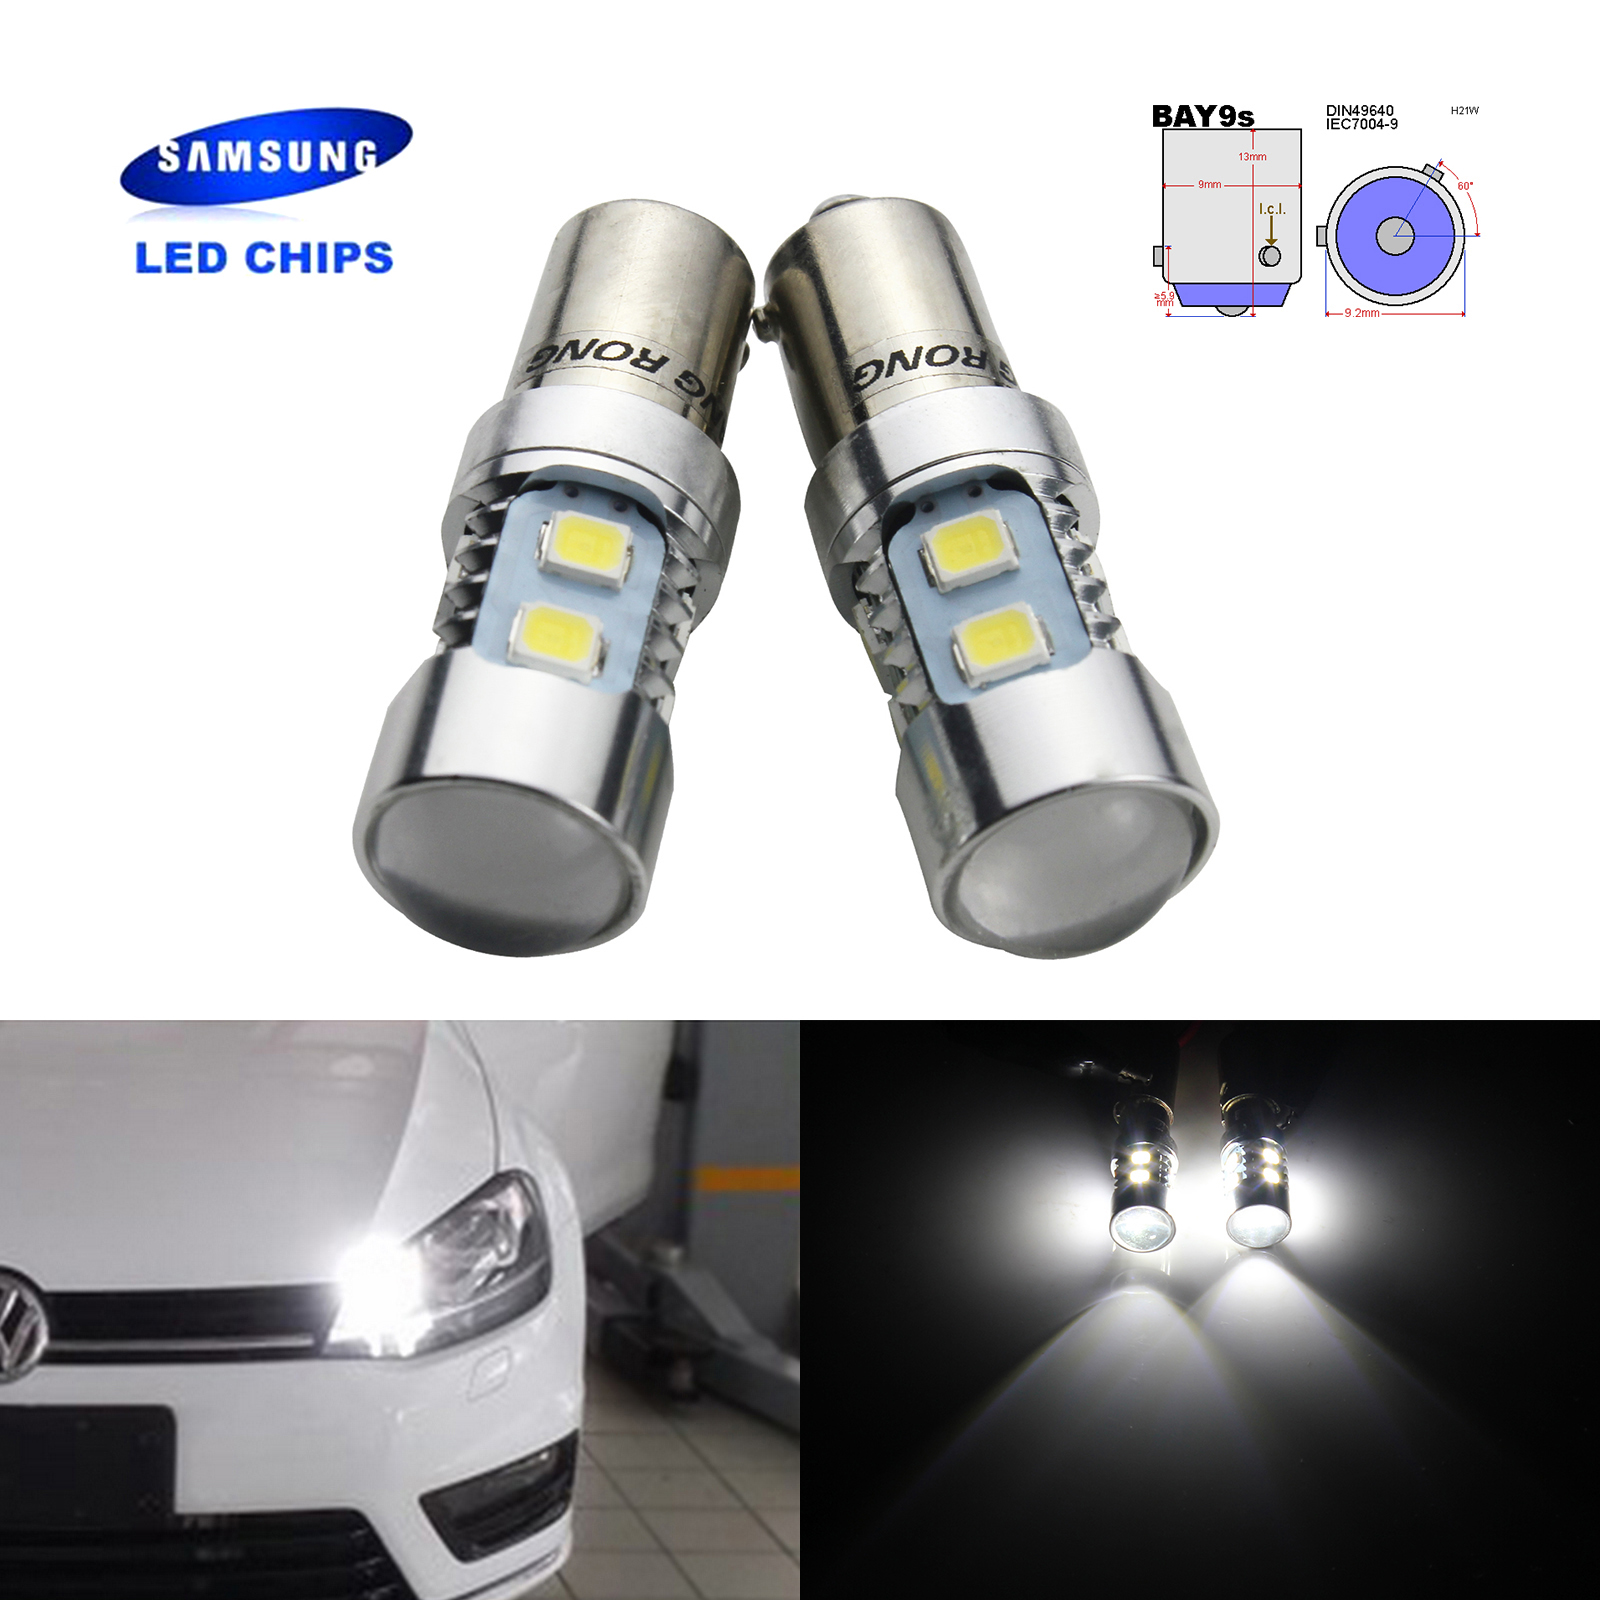 US $9 4 5% OFF|ANGRONG 2x White BAY9s 435 H21W 10 SMD SAMSUNG LED Reverse  Indicator Daytime Light Bulbs-in Signal Lamp from Automobiles & Motorcycles